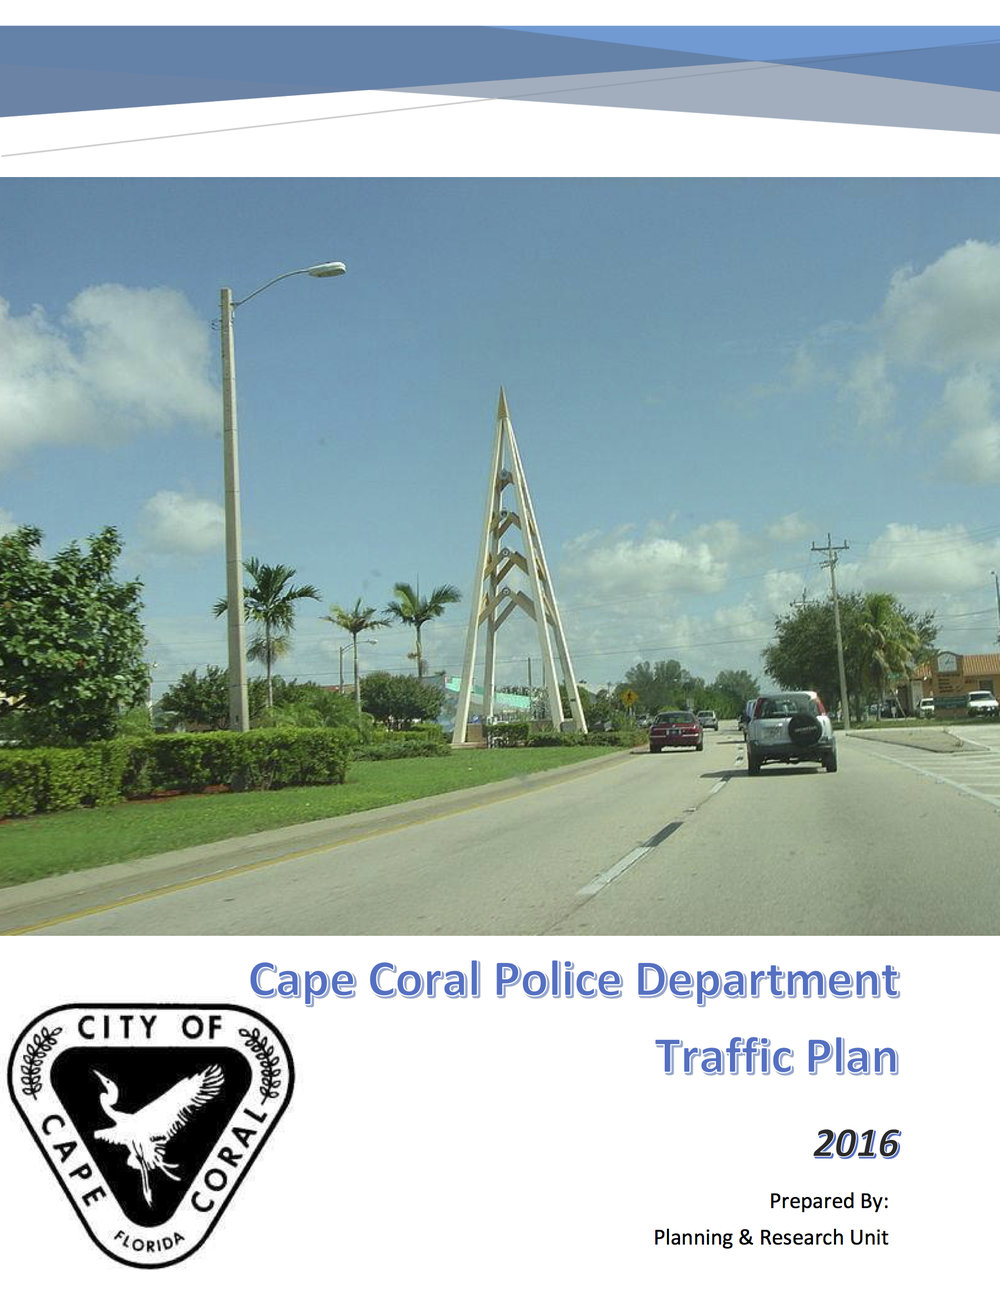 2016 Cape Coral Police Department Traffic Plan - The purpose of this report is to review and analyze the traffic information for 2016, in comparison to prior years, in order to see what is currently happening on the roadways of Cape Coral. Equipped with that information the command staff members will be able to plan, update processes, and redeveloping strategies can be done to ensure that all the proper resources are in place to reduce the number of traffic accidents, fatalities, and other traffic incidents.